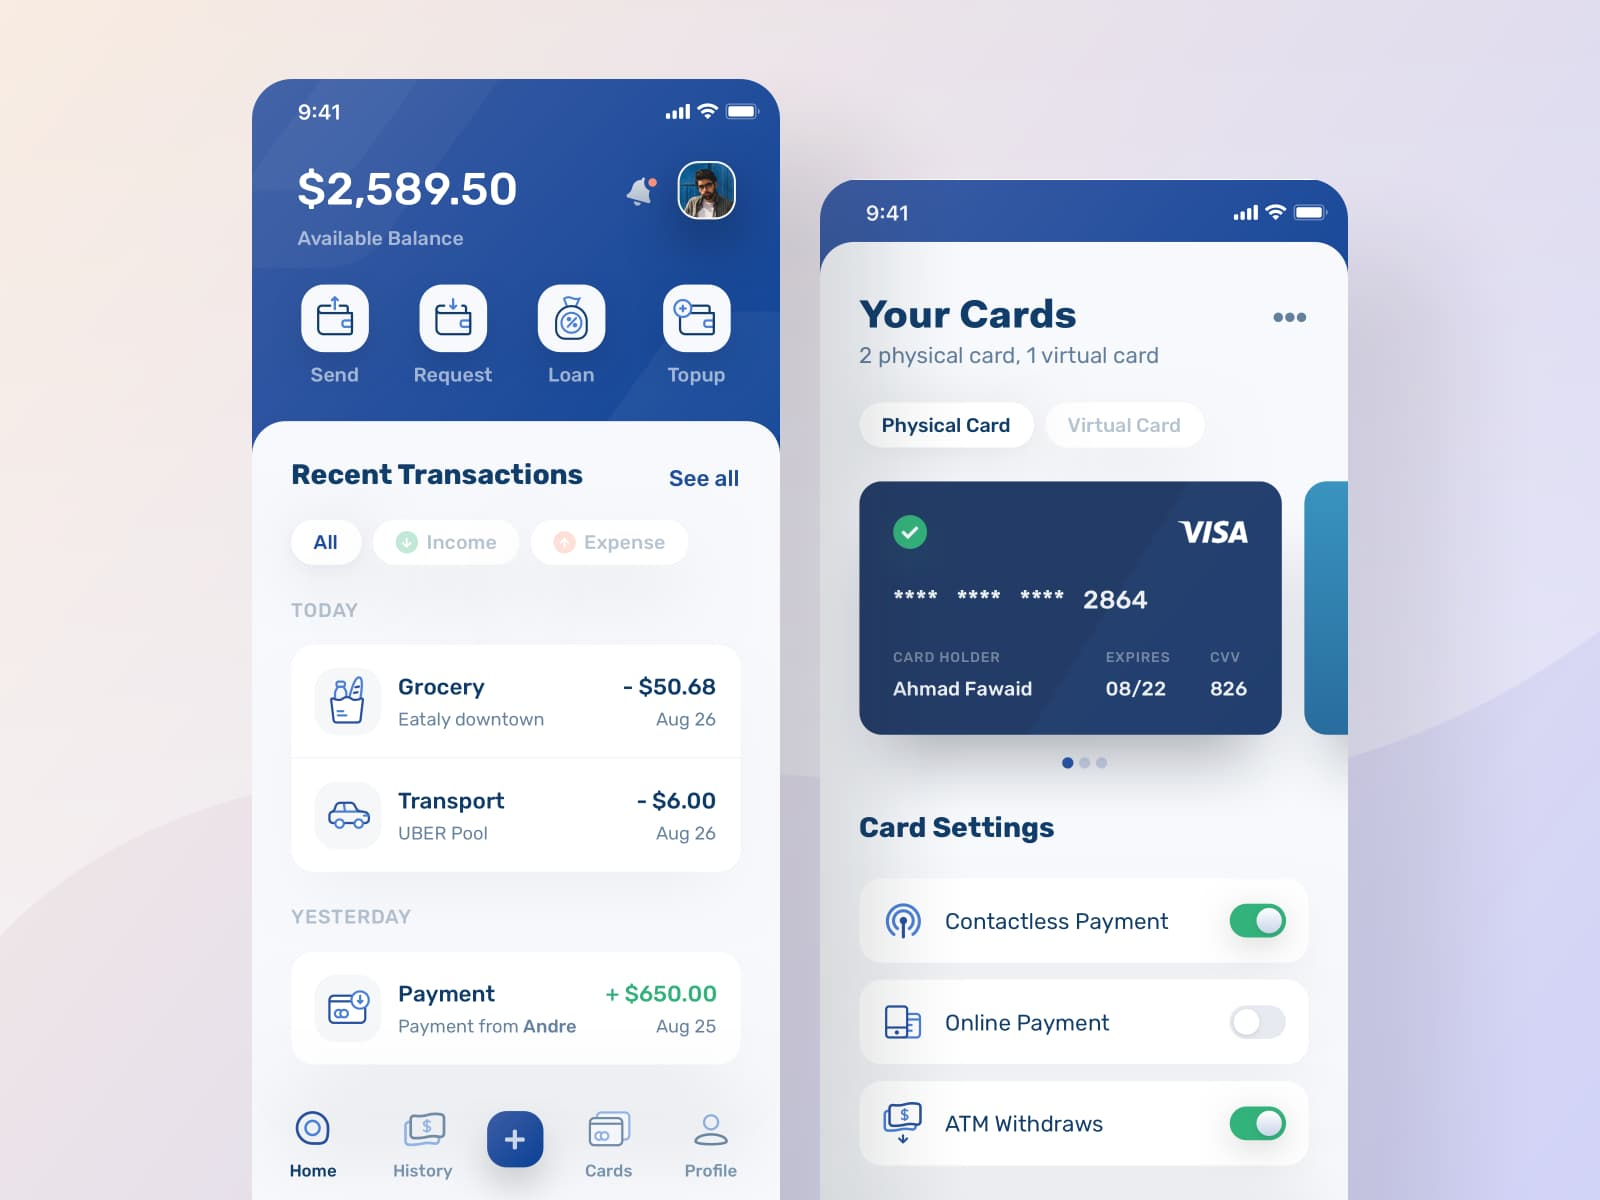 Personal Finance App Dashboard - Bills and Expenses